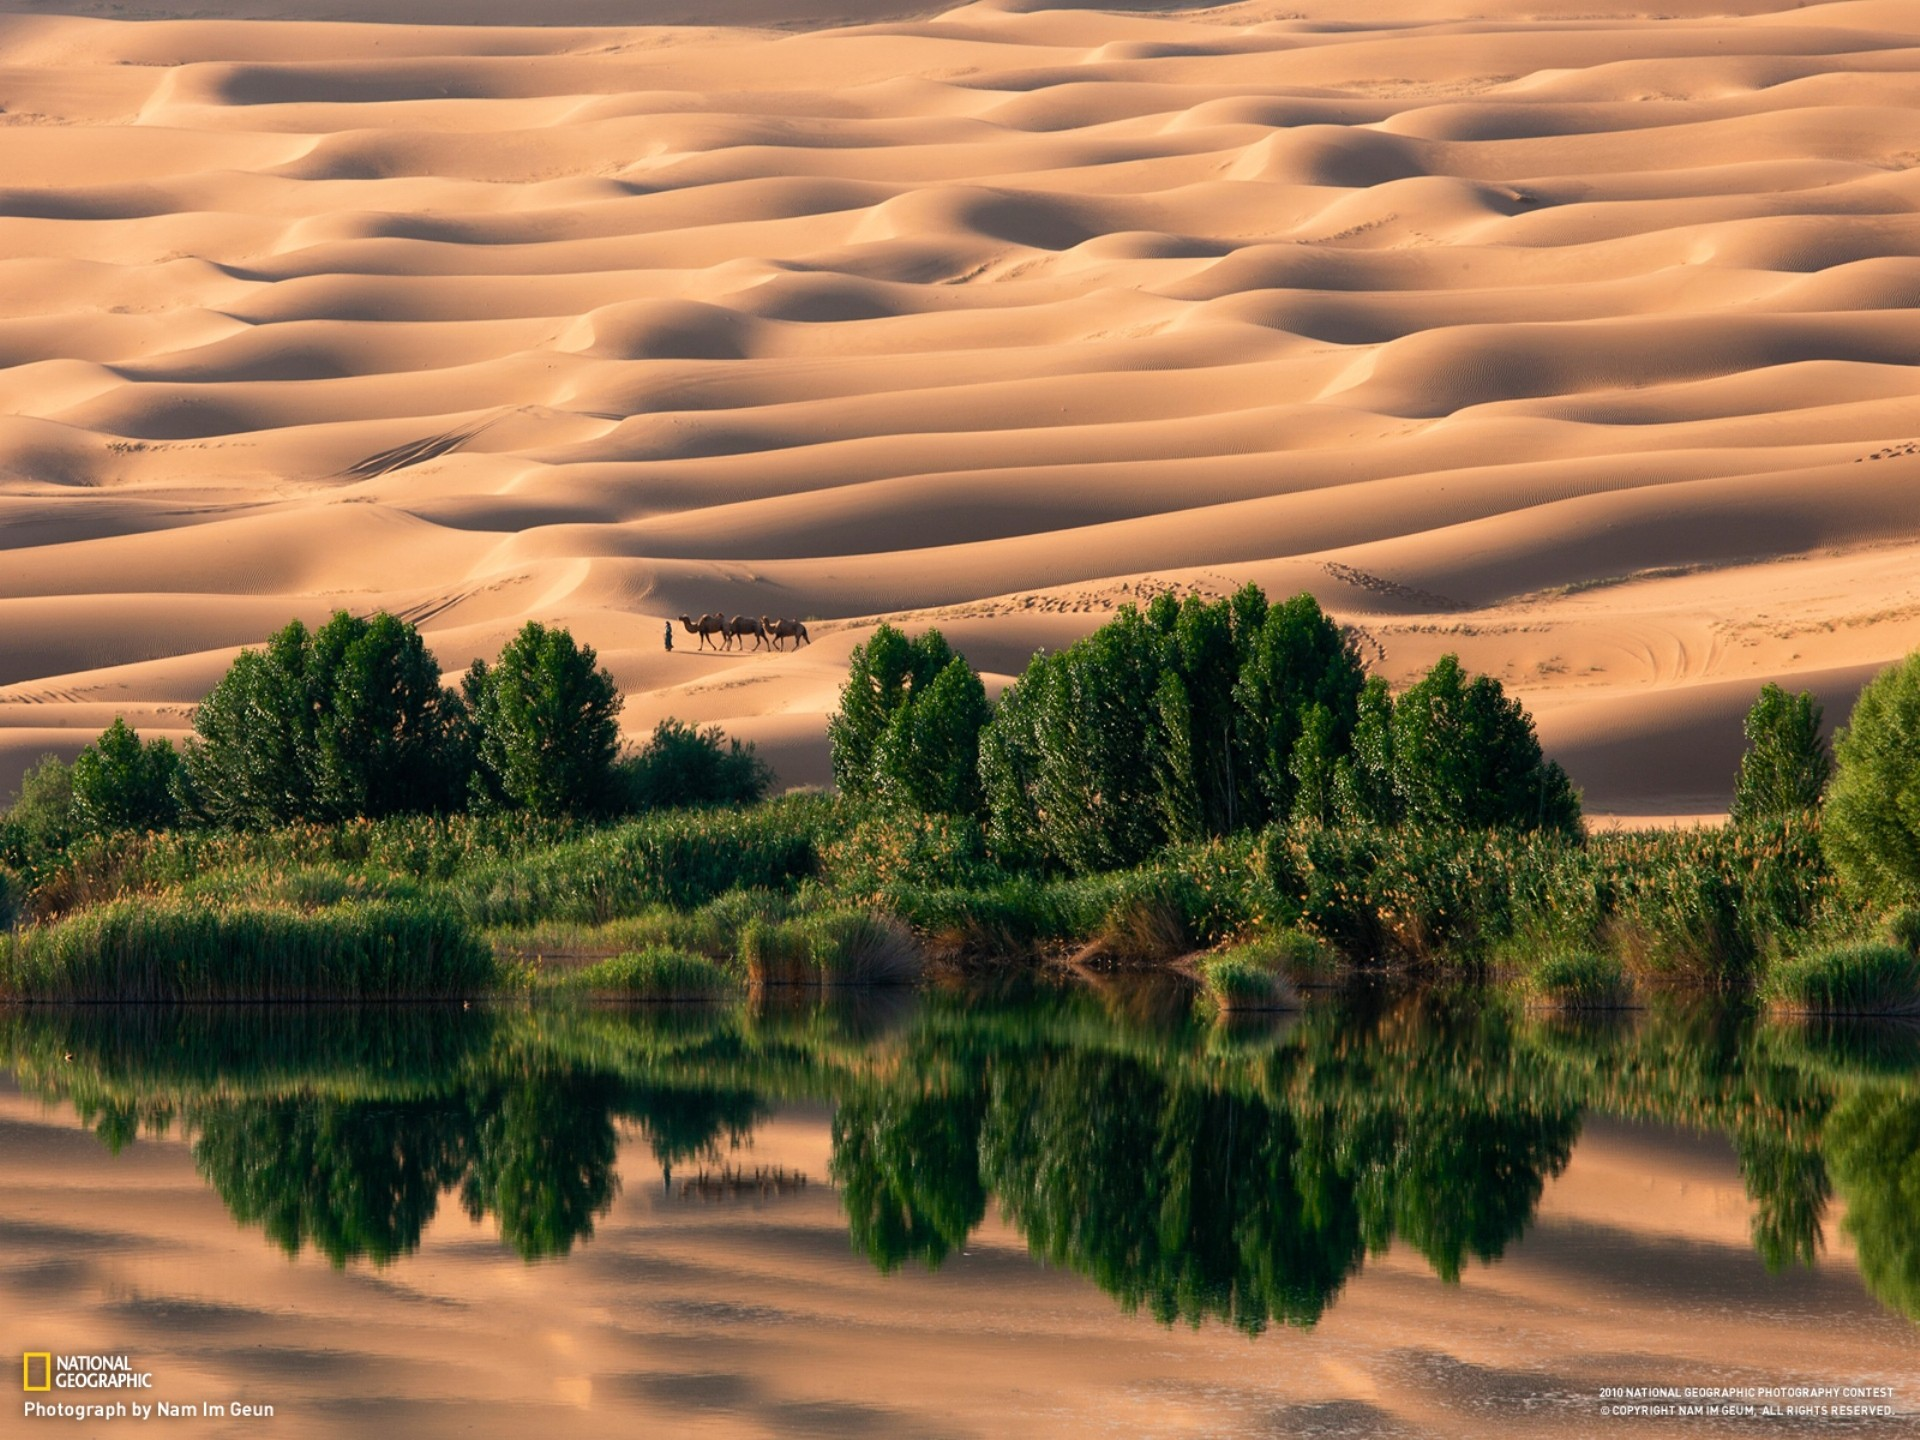 Landscapes nature desert national geographic oasis camels sand dunes reflections